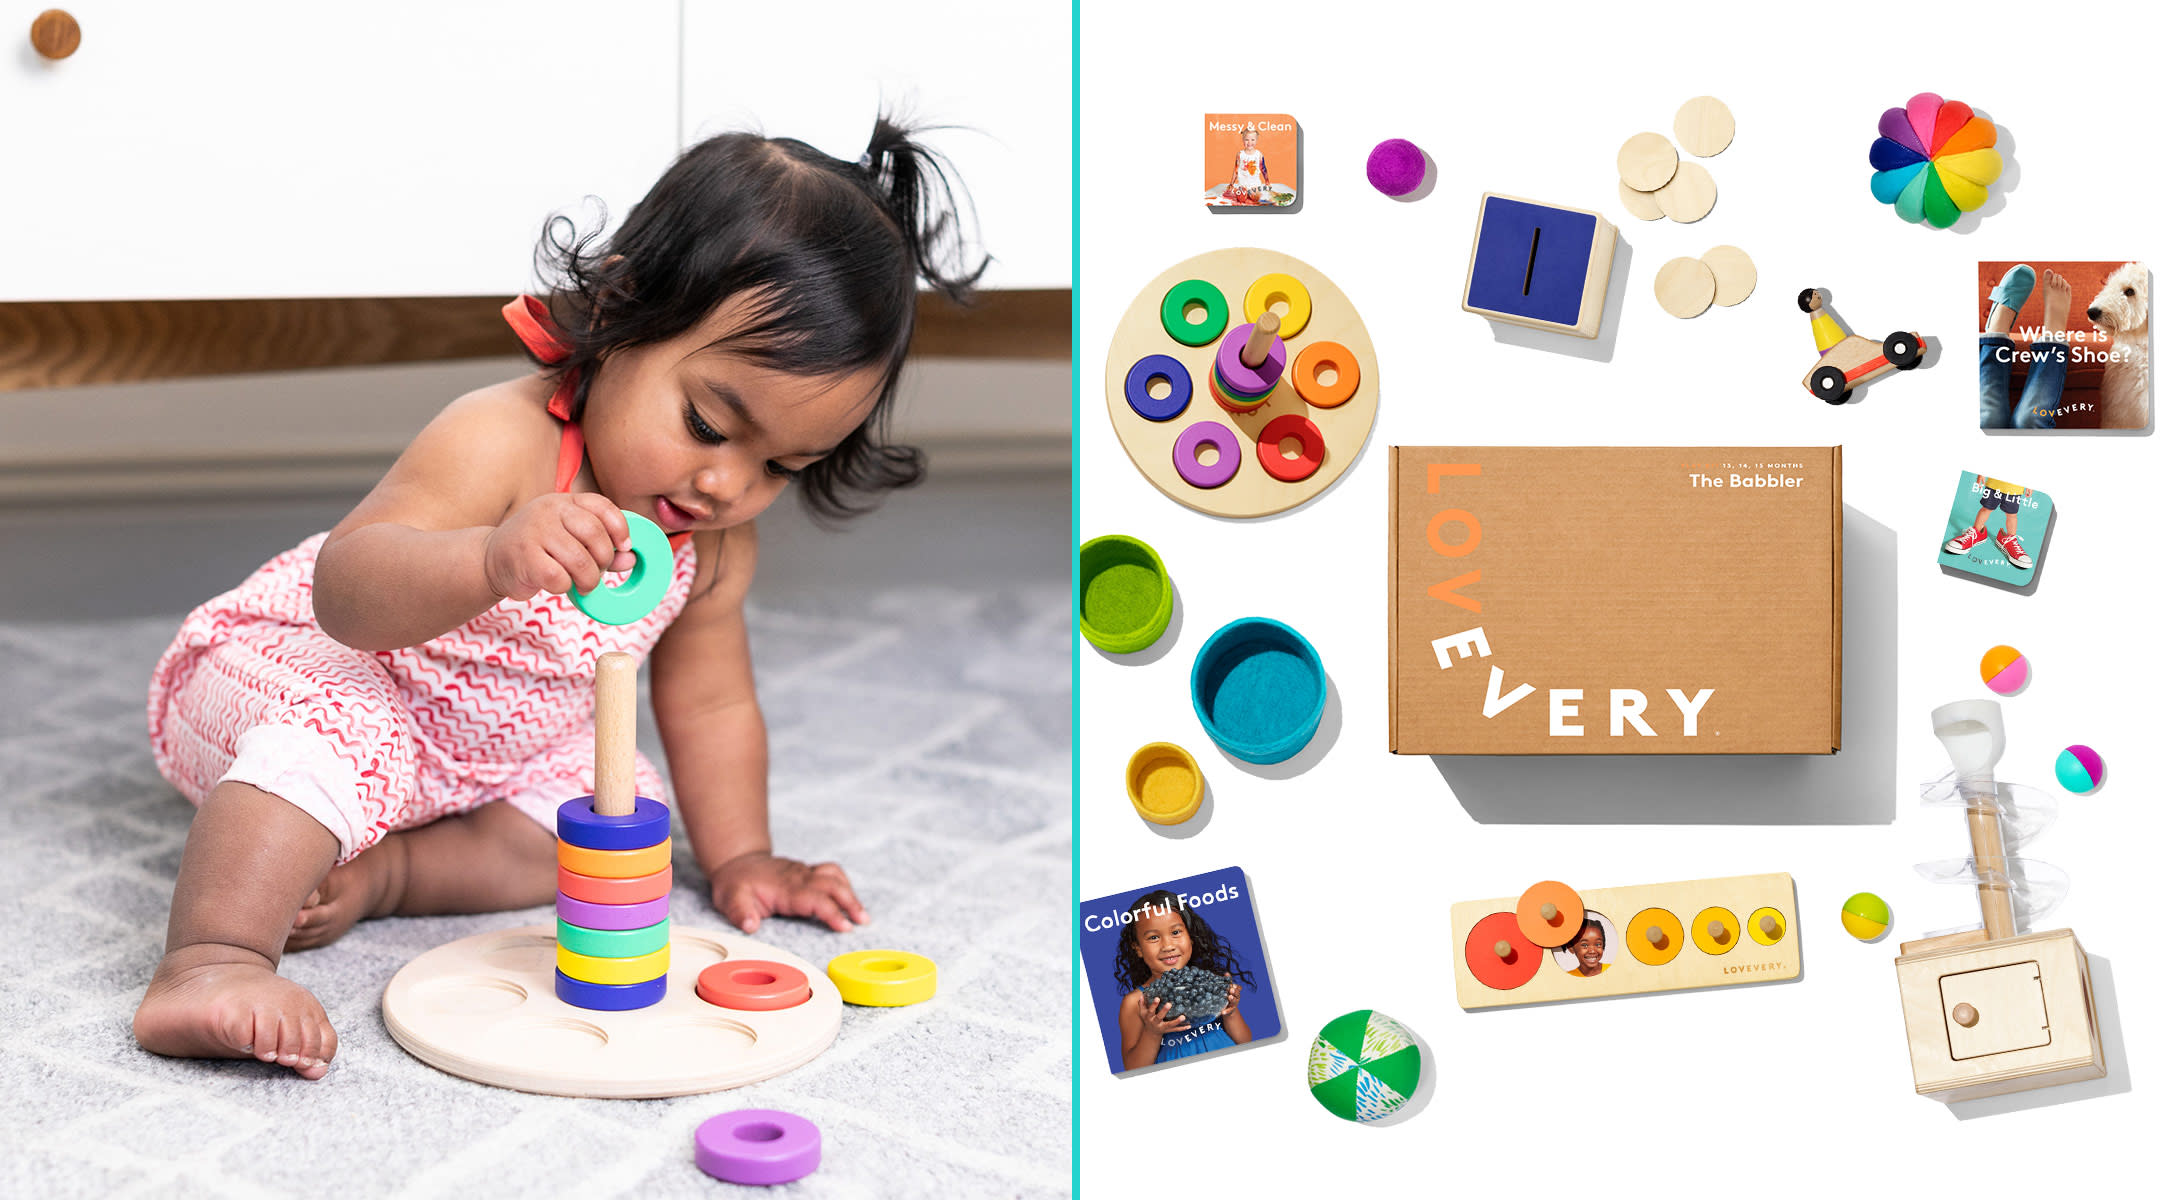 love every launches a curated baby toy subscription service